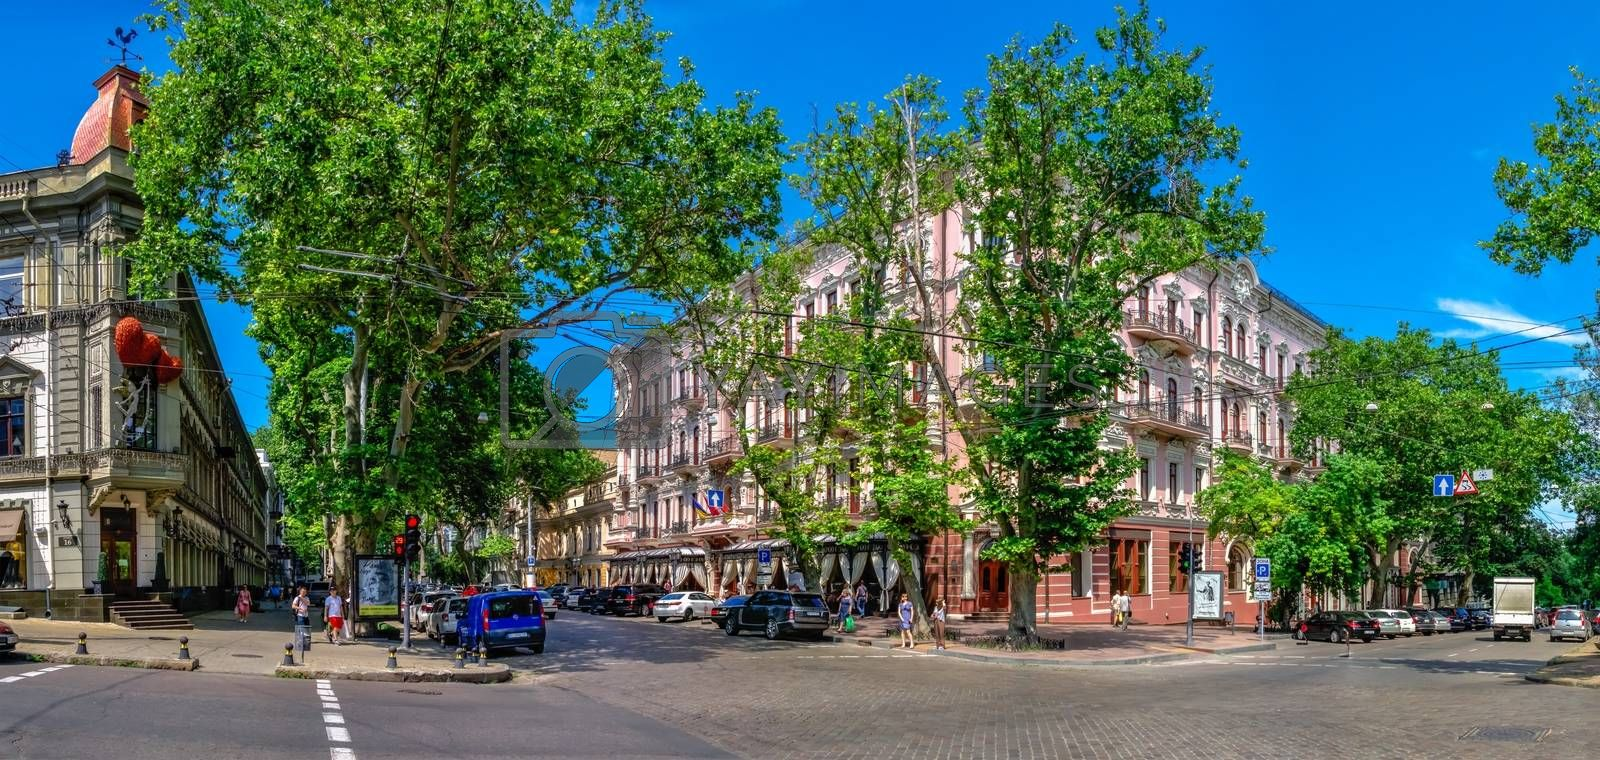 Odessa, Ukraine 06.23.2020. Luxury hotel Bristol in the historic center of the Odessa city on a sunny summer day